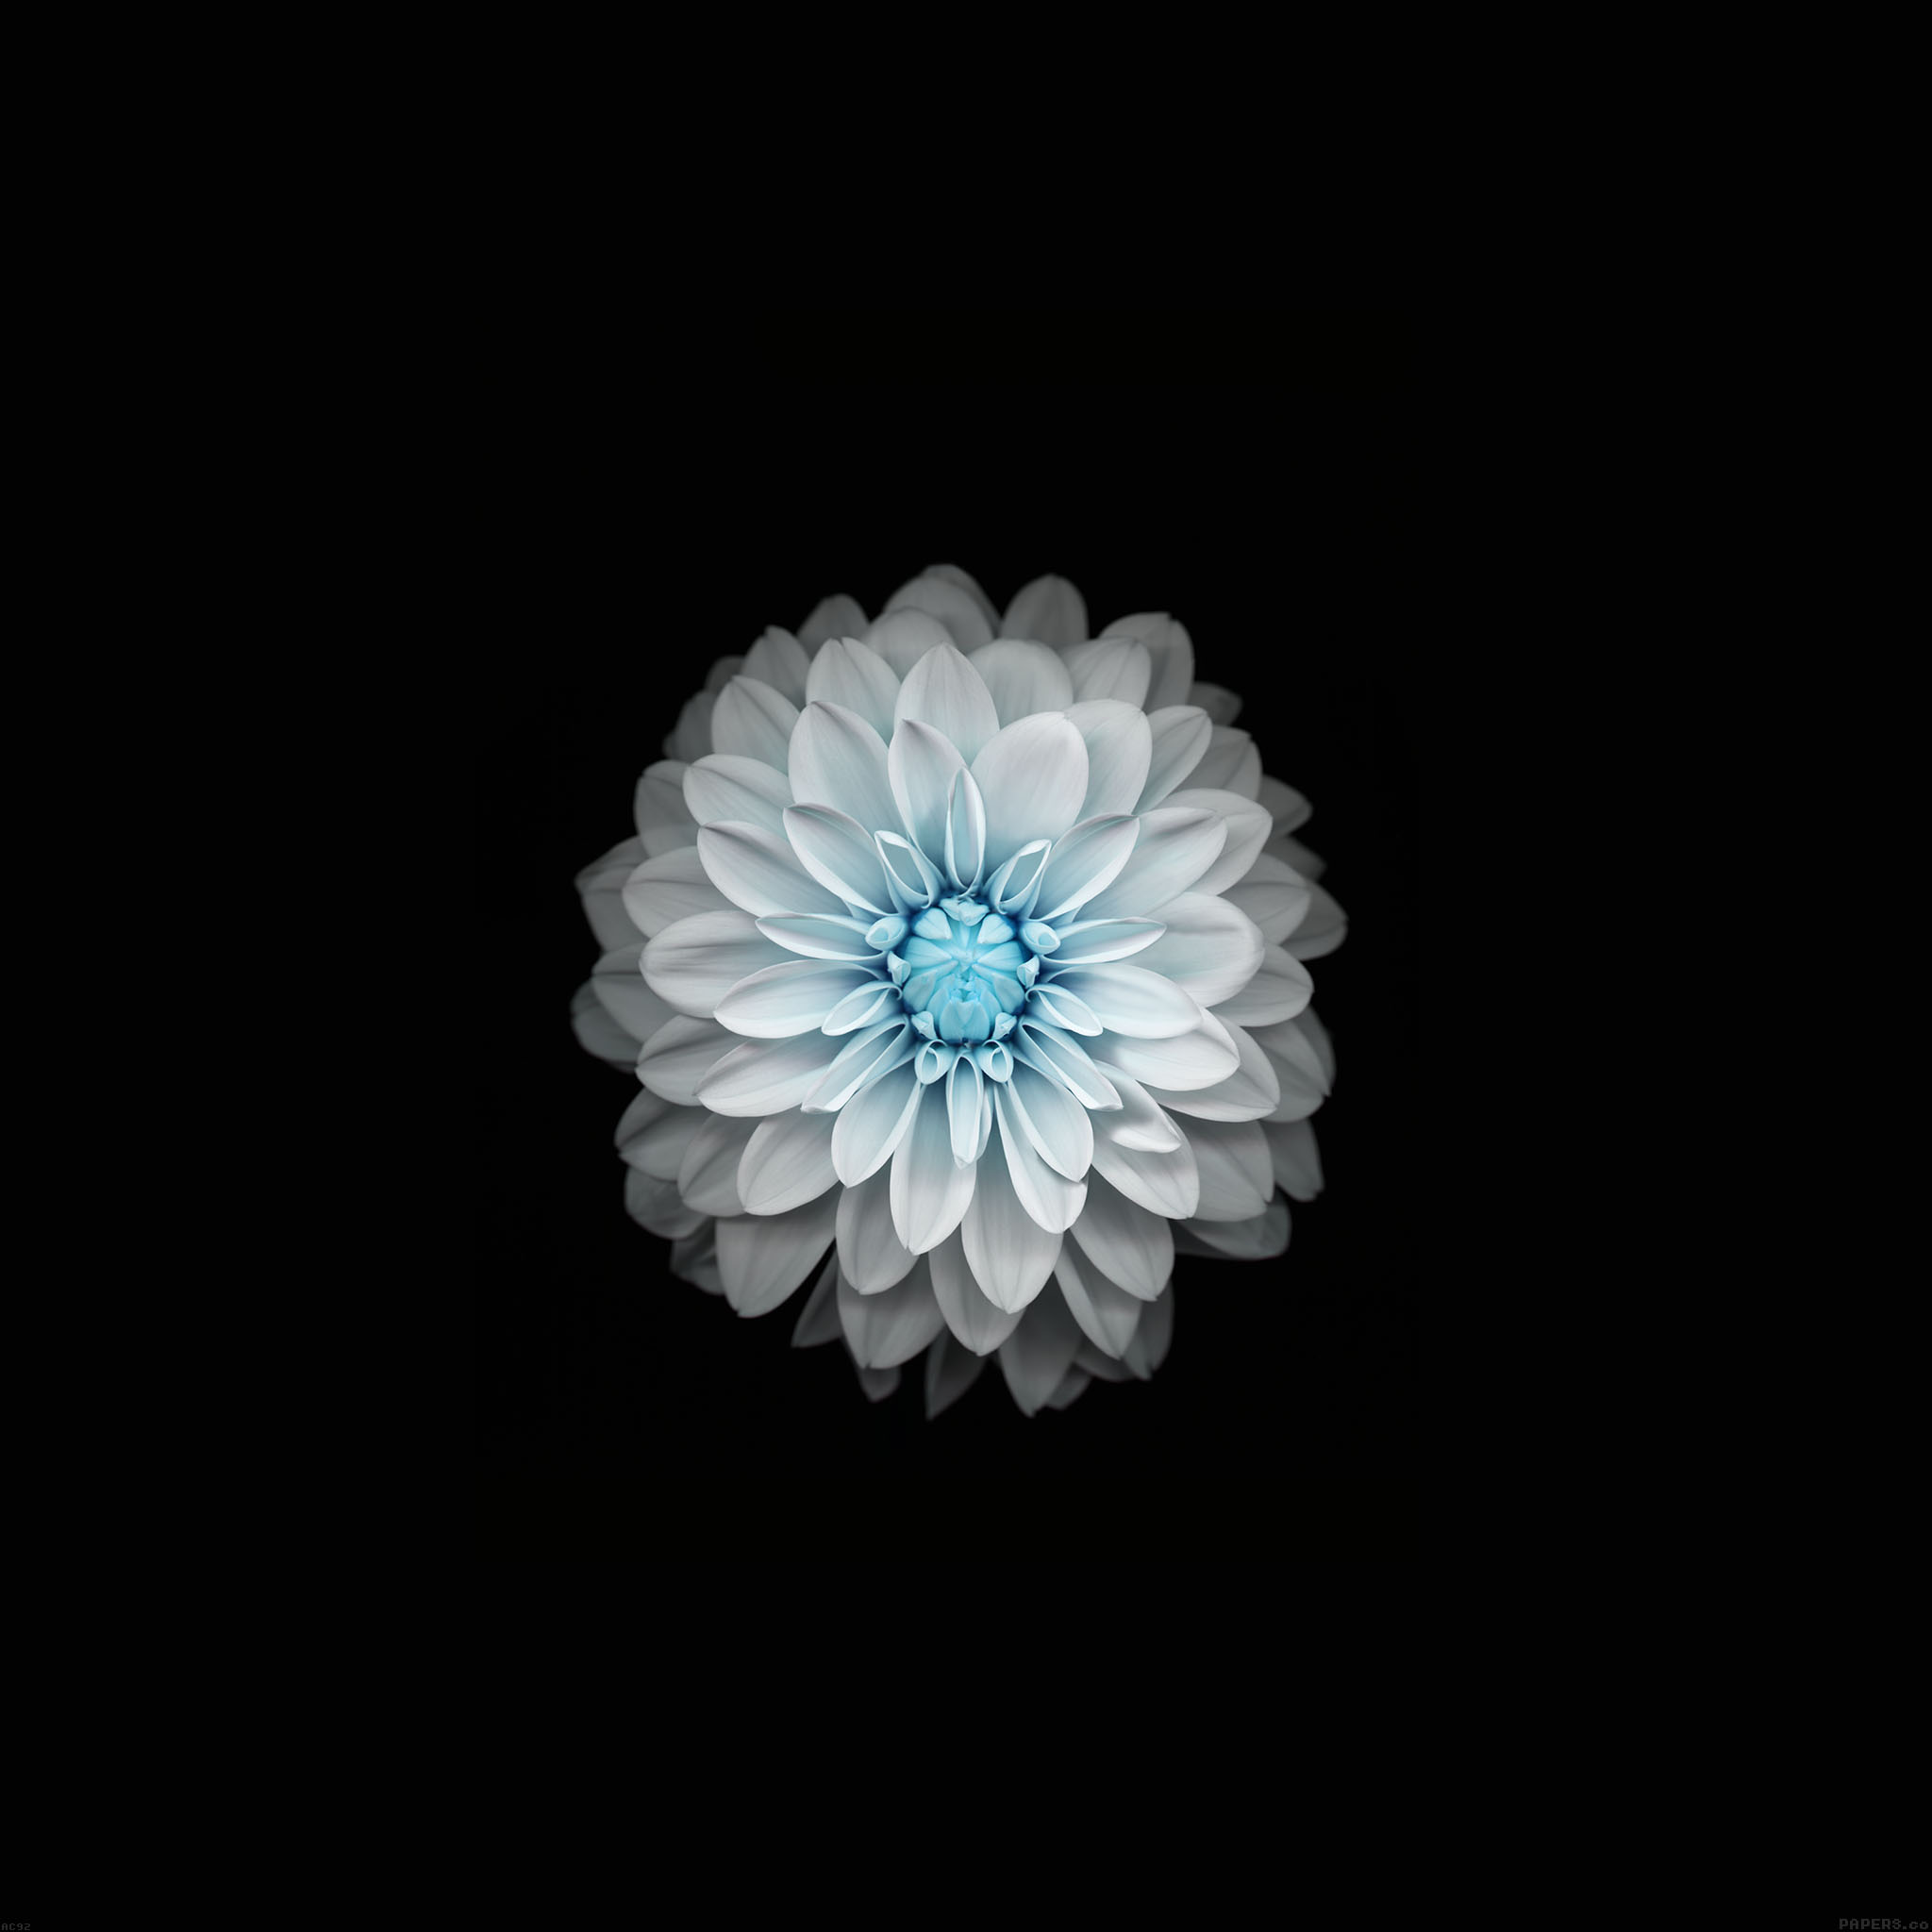 Iphone6 Wallpapers: Ac92-wallpaper-apple-iphone6-plus-ios8-flower